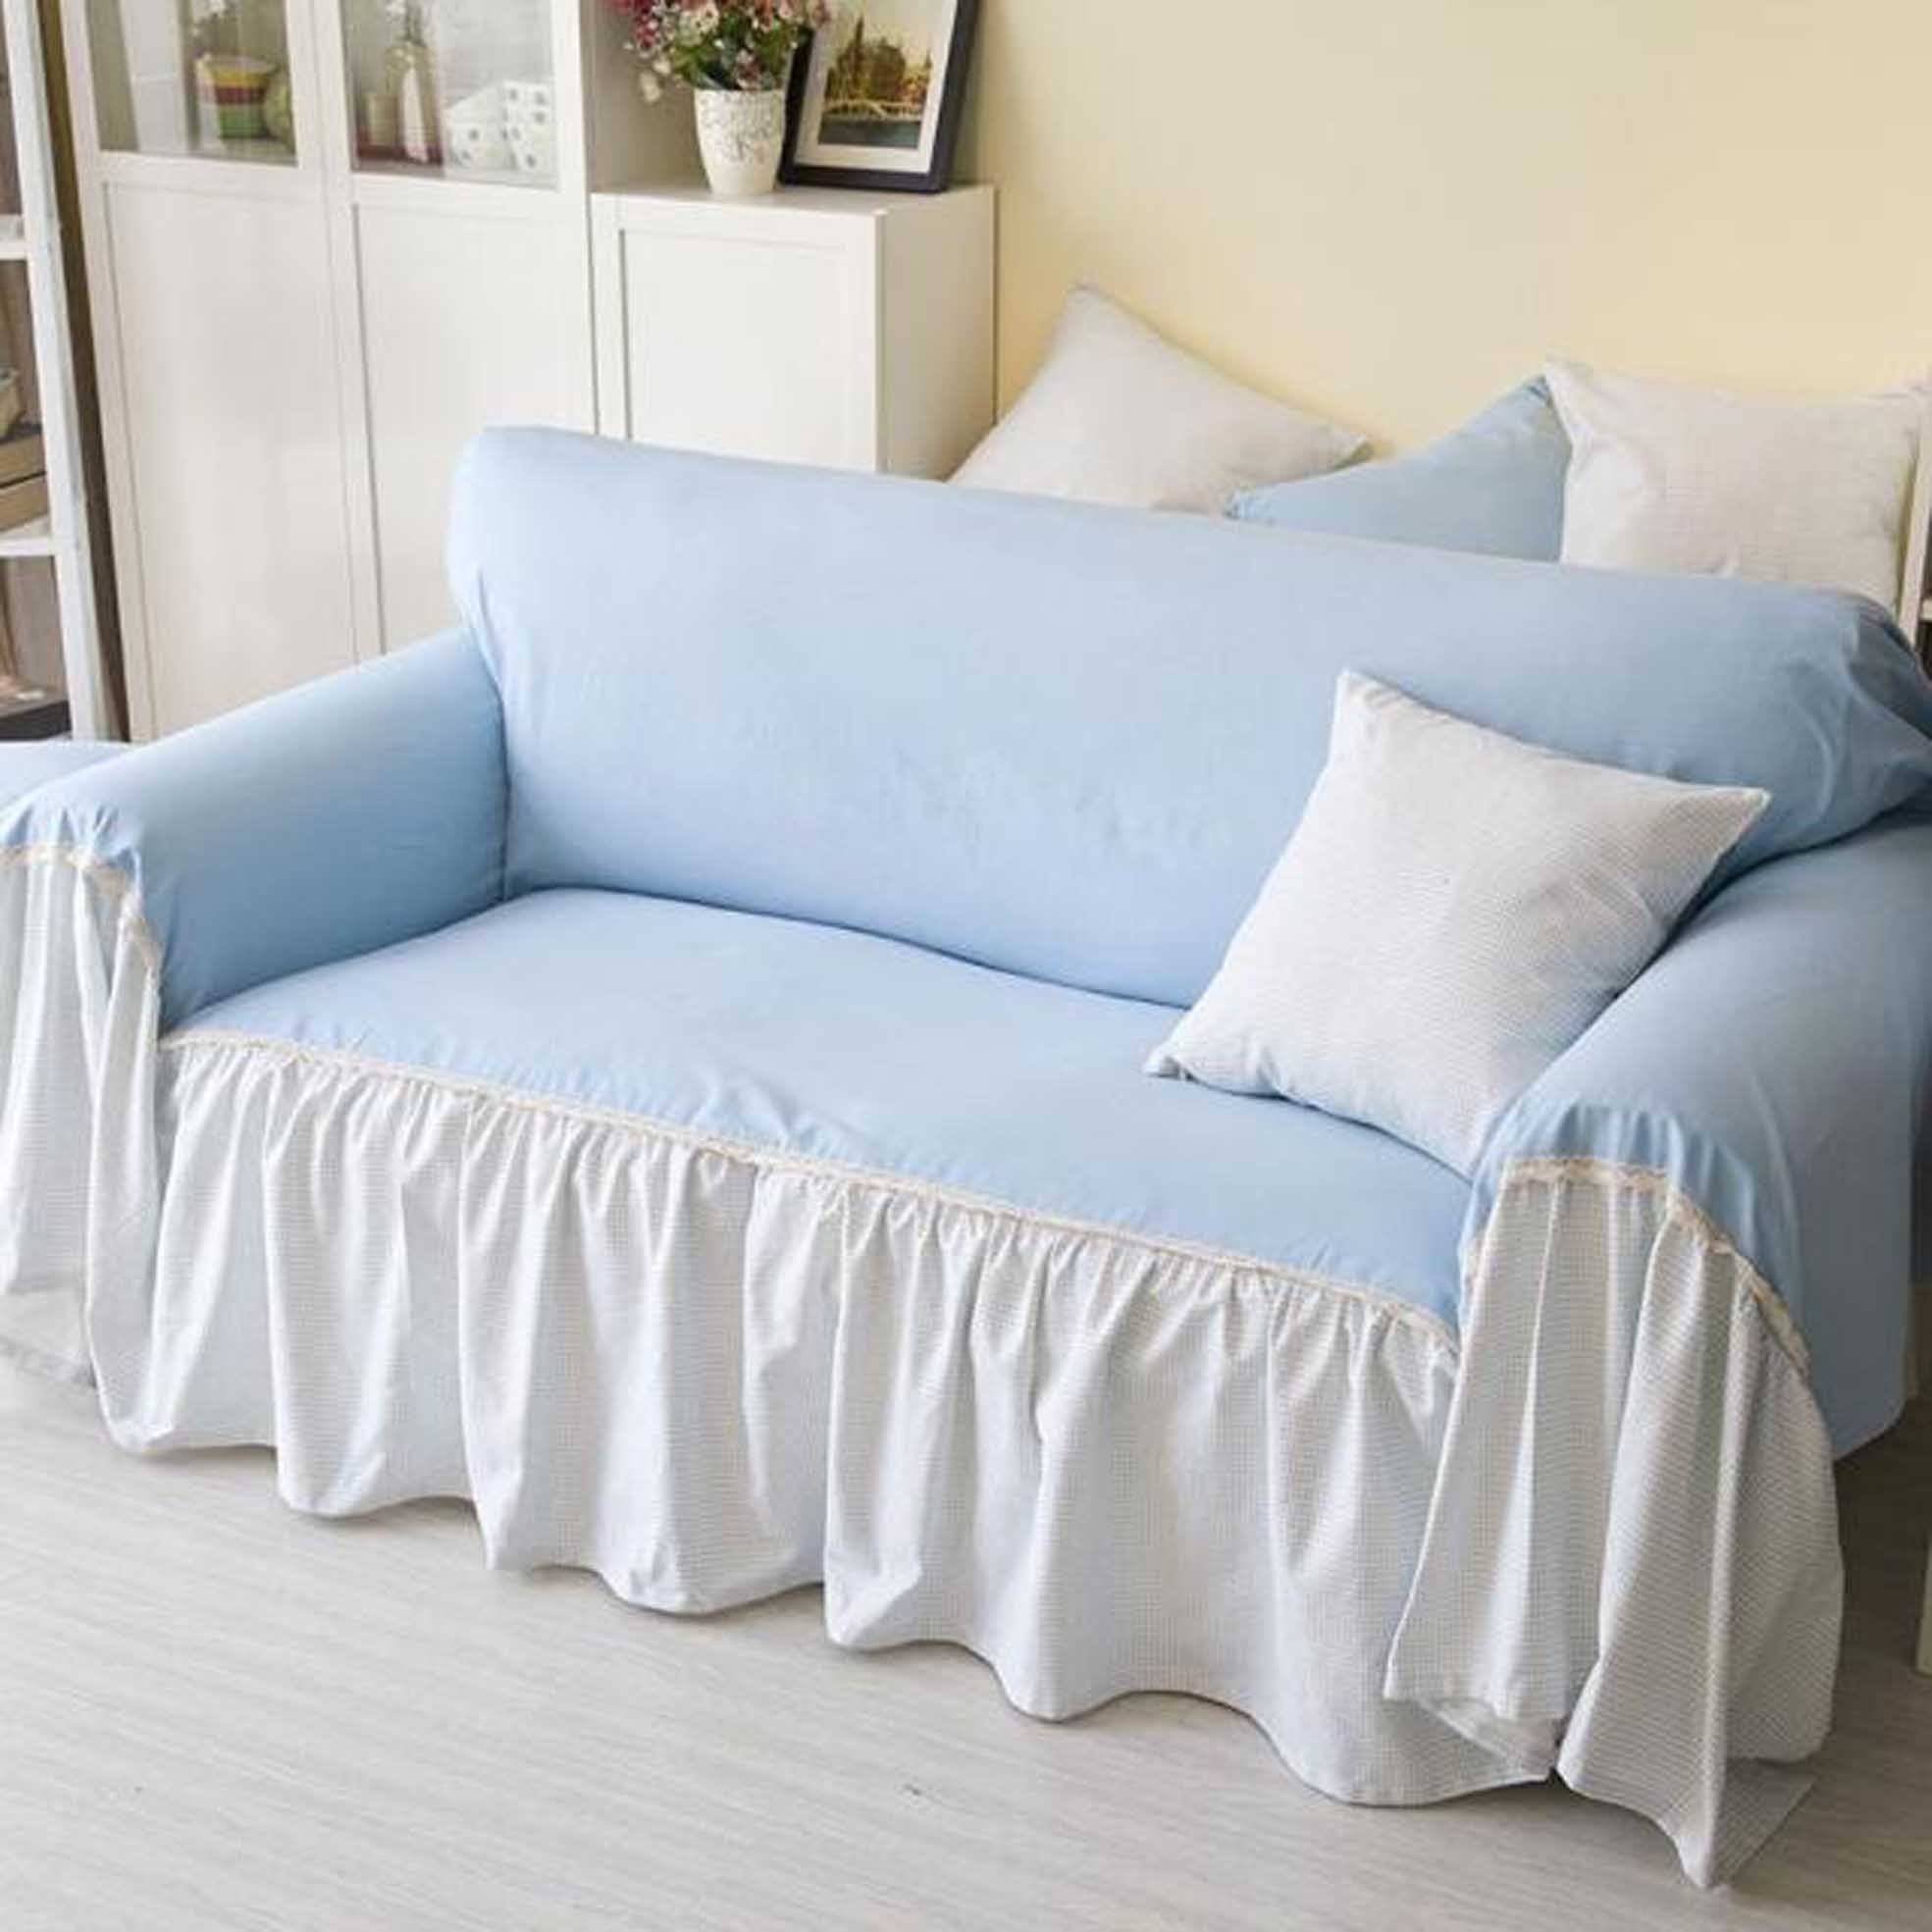 Cute Couch Covers with Cushions for Sectionals  for Living Room: Brilliant Couch Covers With Cushions For Sectionals  For Living Room With Furniture Covers For Sectionals